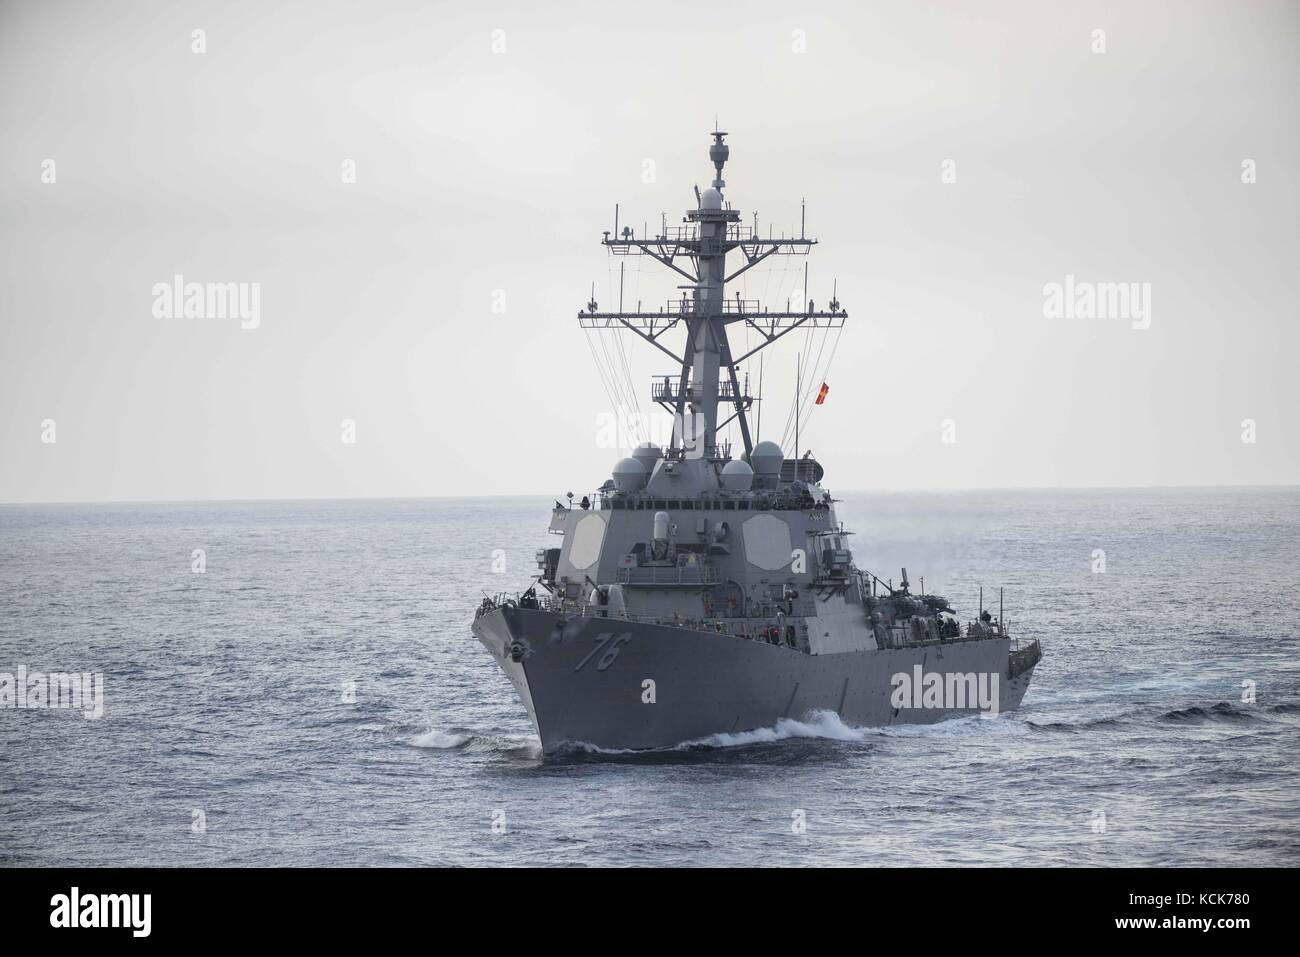 The U.S. Navy Arleigh Burke-class guided-missile destroyer USS Higgins steams underway August 2, 2017 in the Pacific - Stock Image